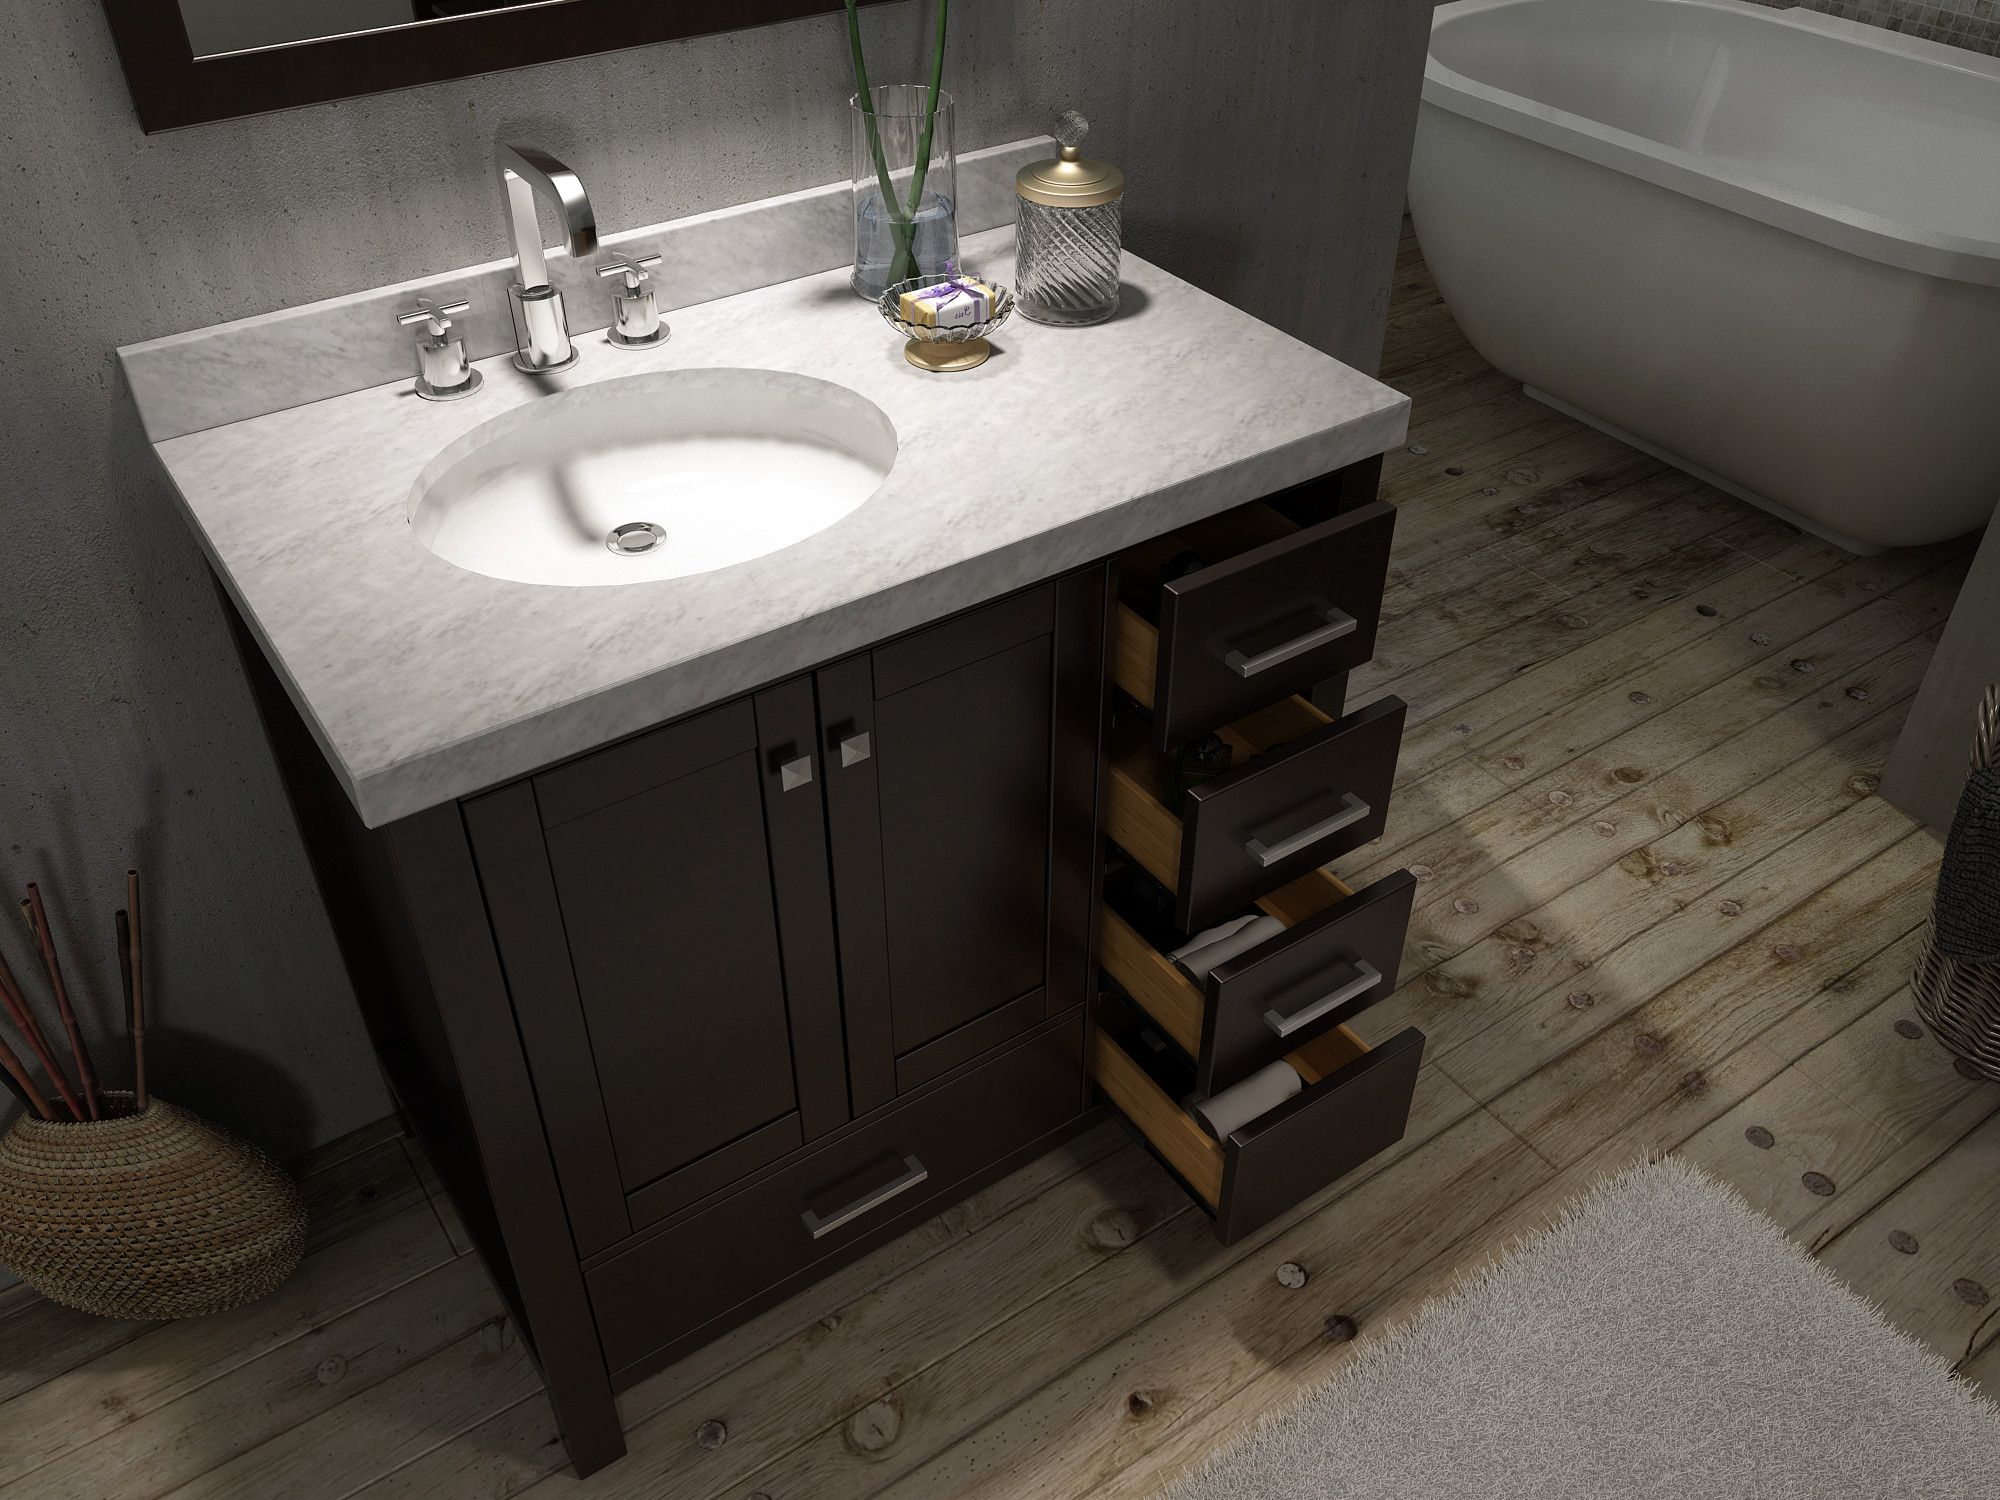 42 Bathroom Vanity Canada With Top With Offset Sink 36 Inch Bathroom Vanity 48 Inch Bathroom Vanity Vanity Tops With Sink